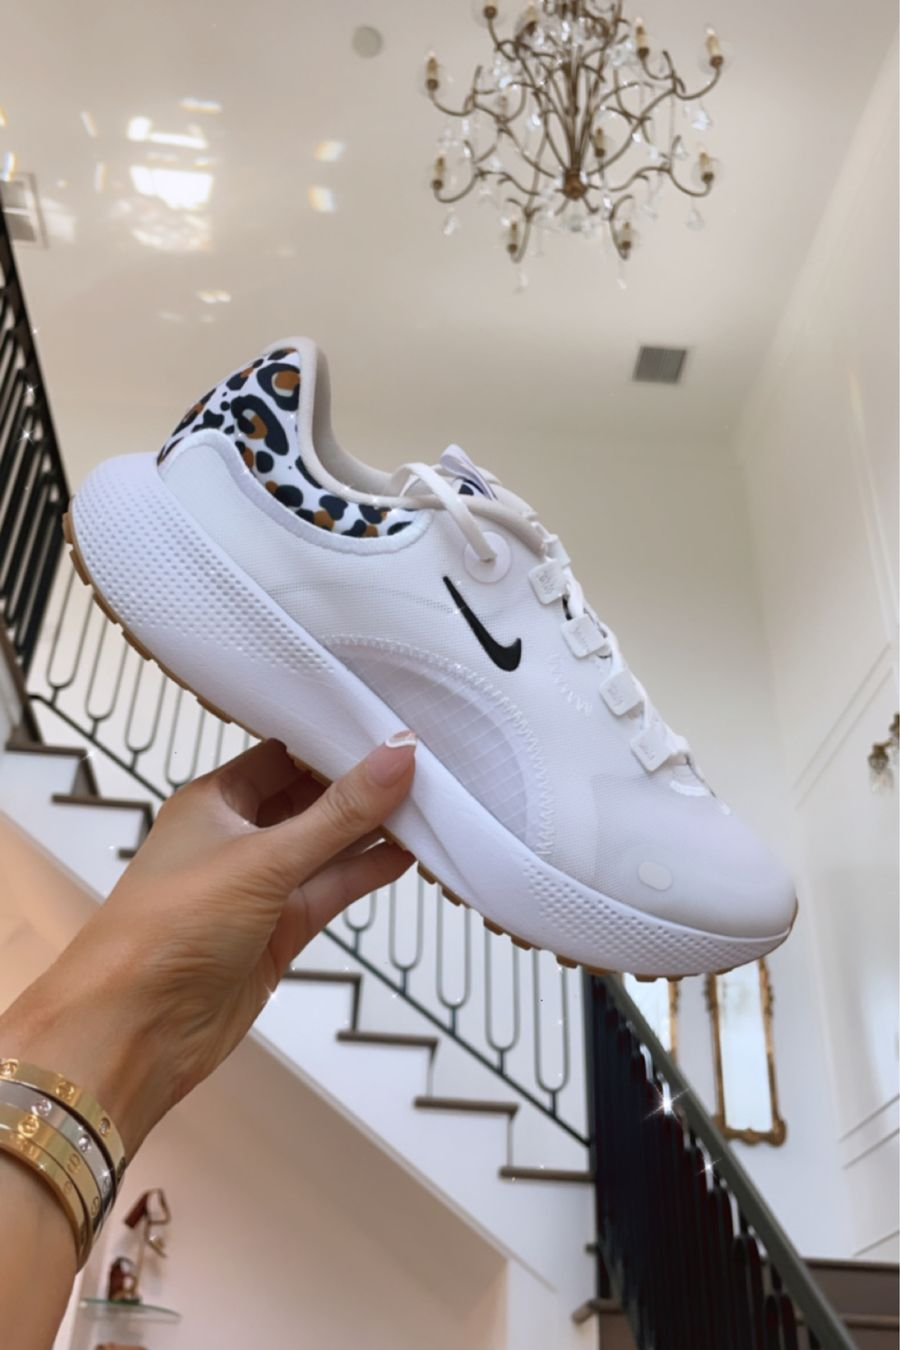 Nike Sneakers, Leopard Print Sneakers, White Sneakers, White Tennis Shoes, Nordstrom Sale Women's Shoes, Emily Ann Gemma   Instagram Recap by popular US life and style blog, The Sweetest Thing: image of Emily Gemma holding a white leopard print Nike sneaker.